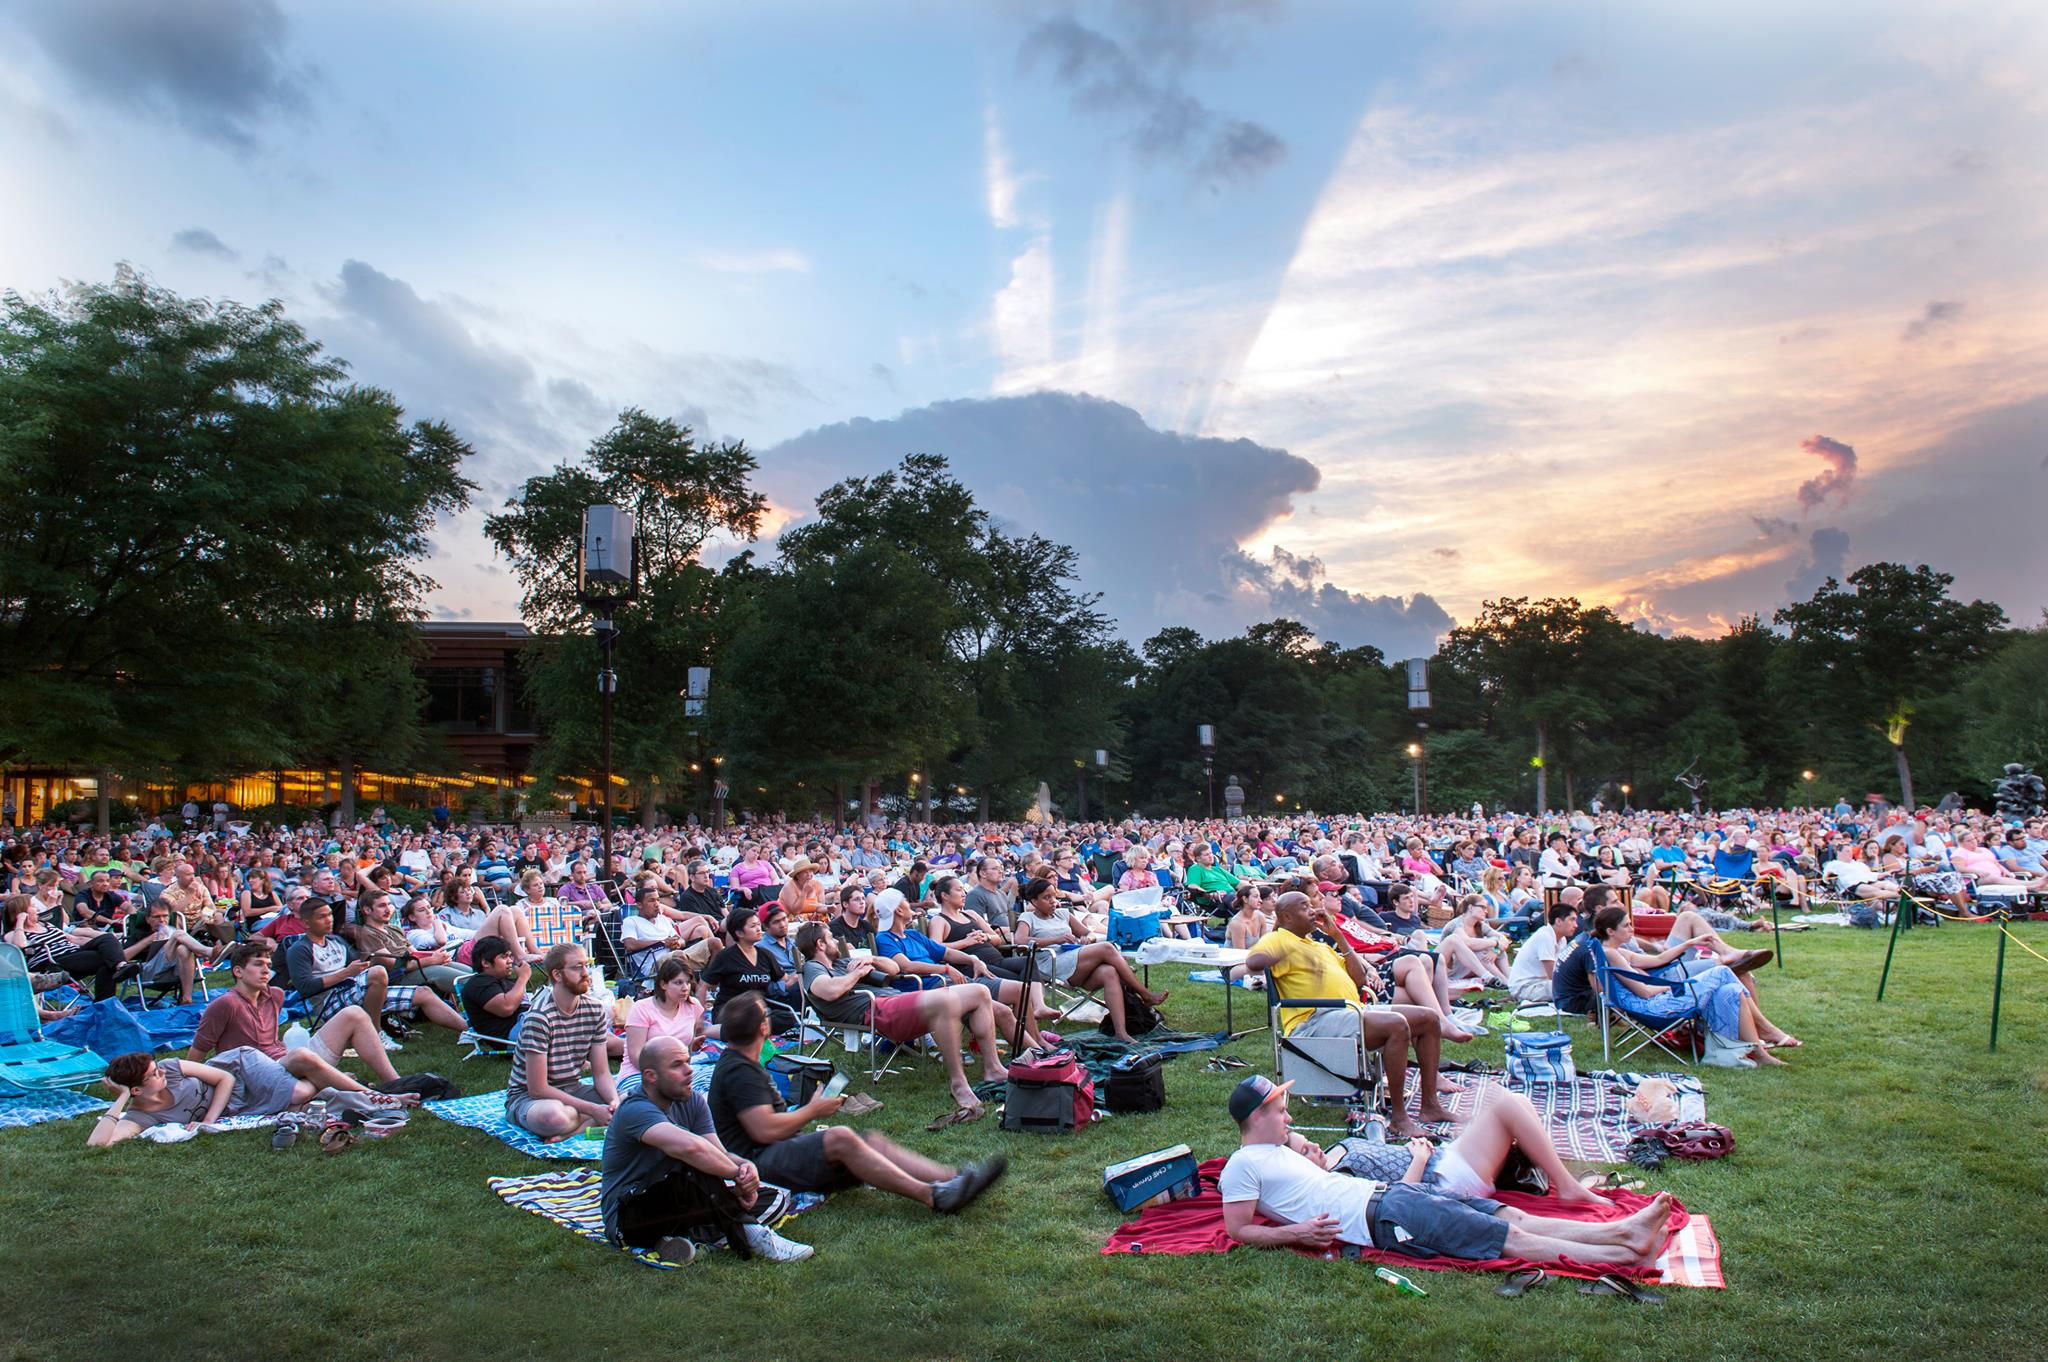 Lollapalooza, Ravinia, or bust: 5 tips for surviving the Chicago outdoor music festivals!